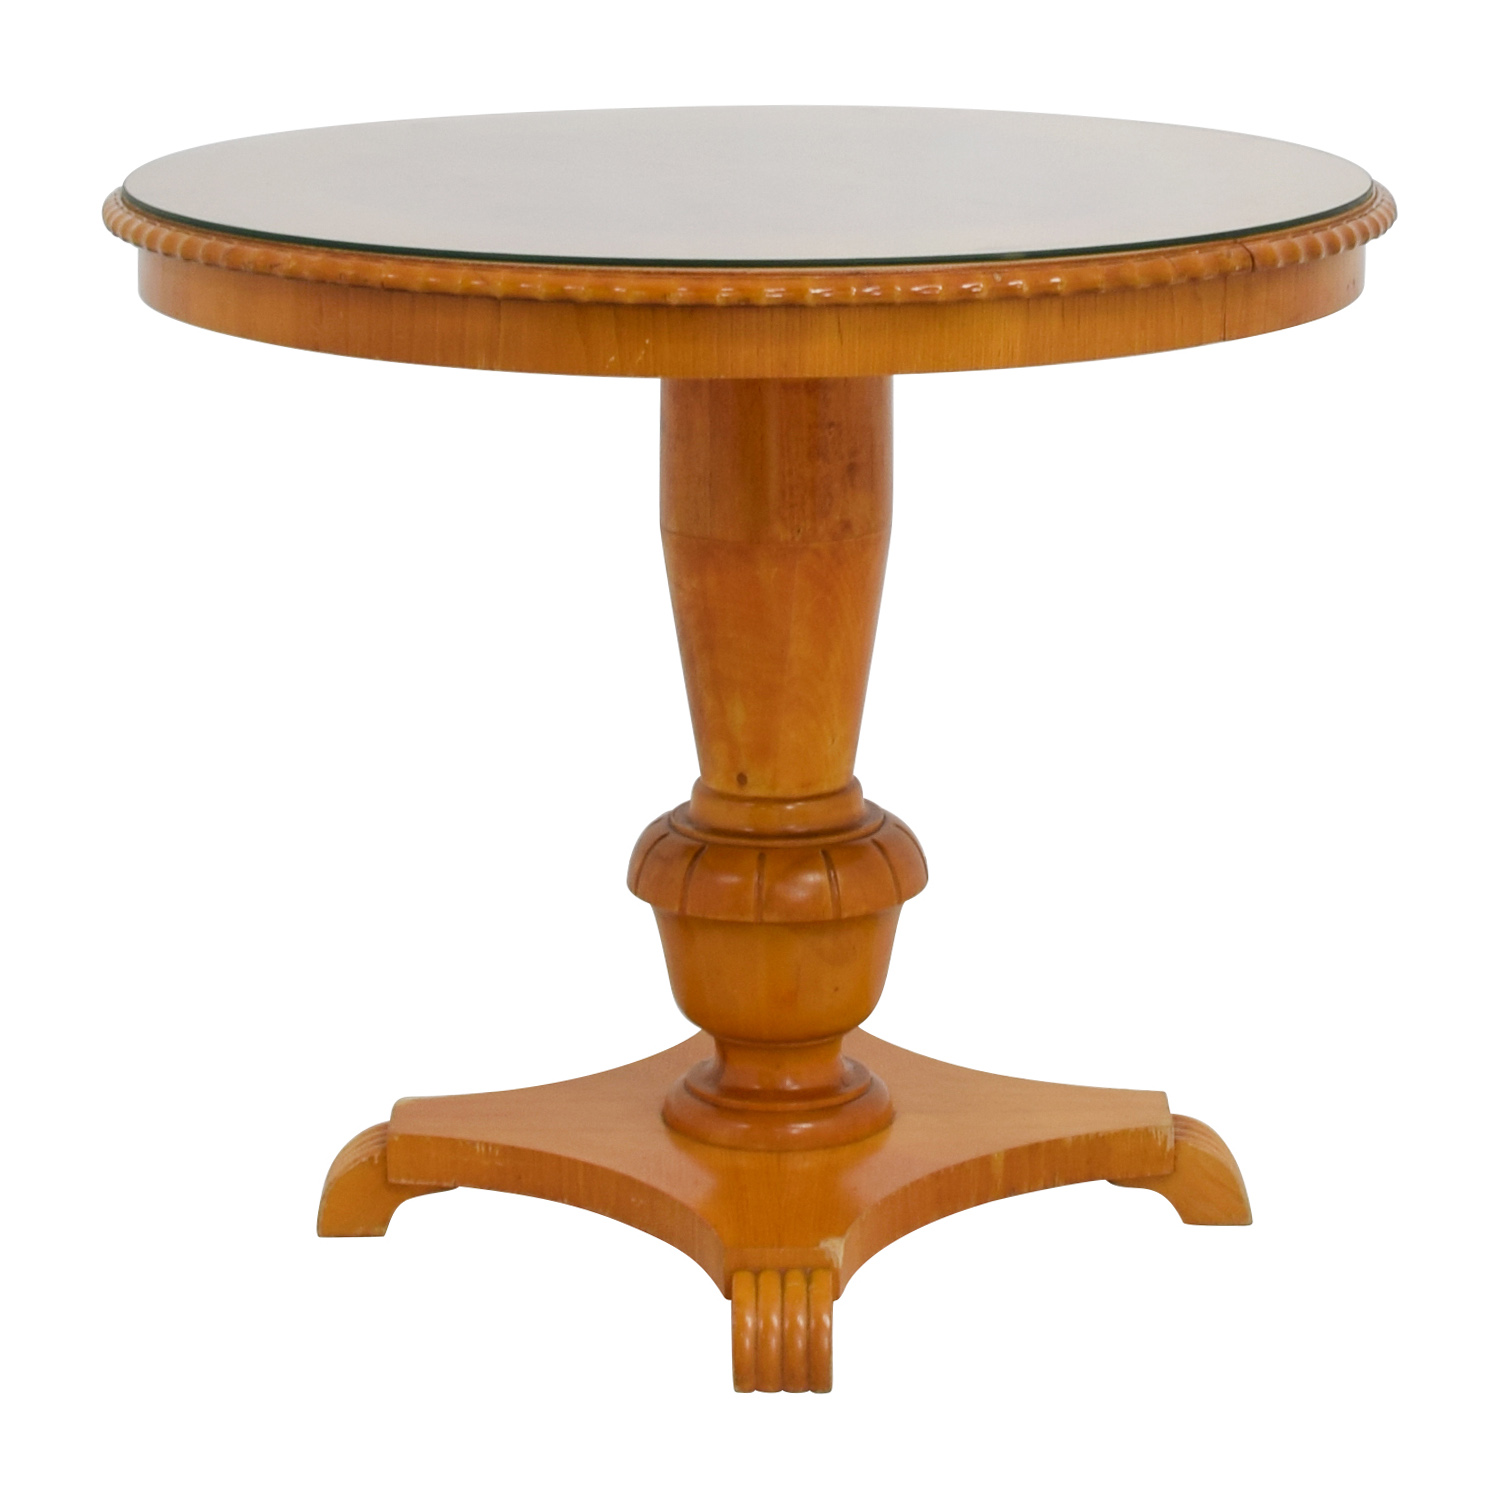 86% OFF - Antique Round Wood Dining Table with Glass Top / Tables